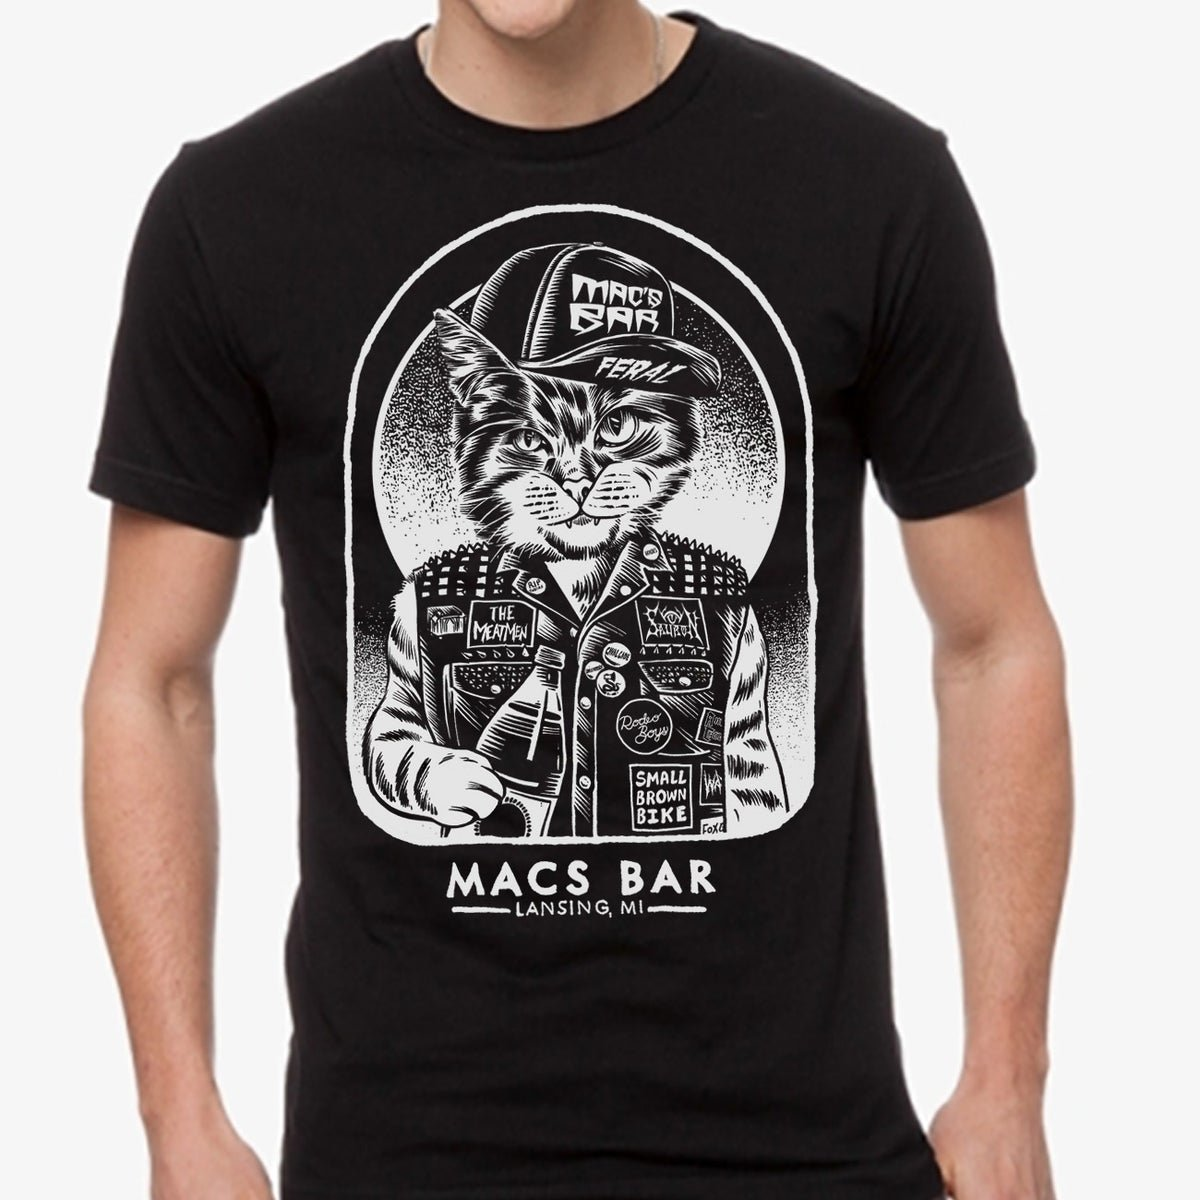 A Mac's Bar-themed T-shirt designed by Craig Horky.